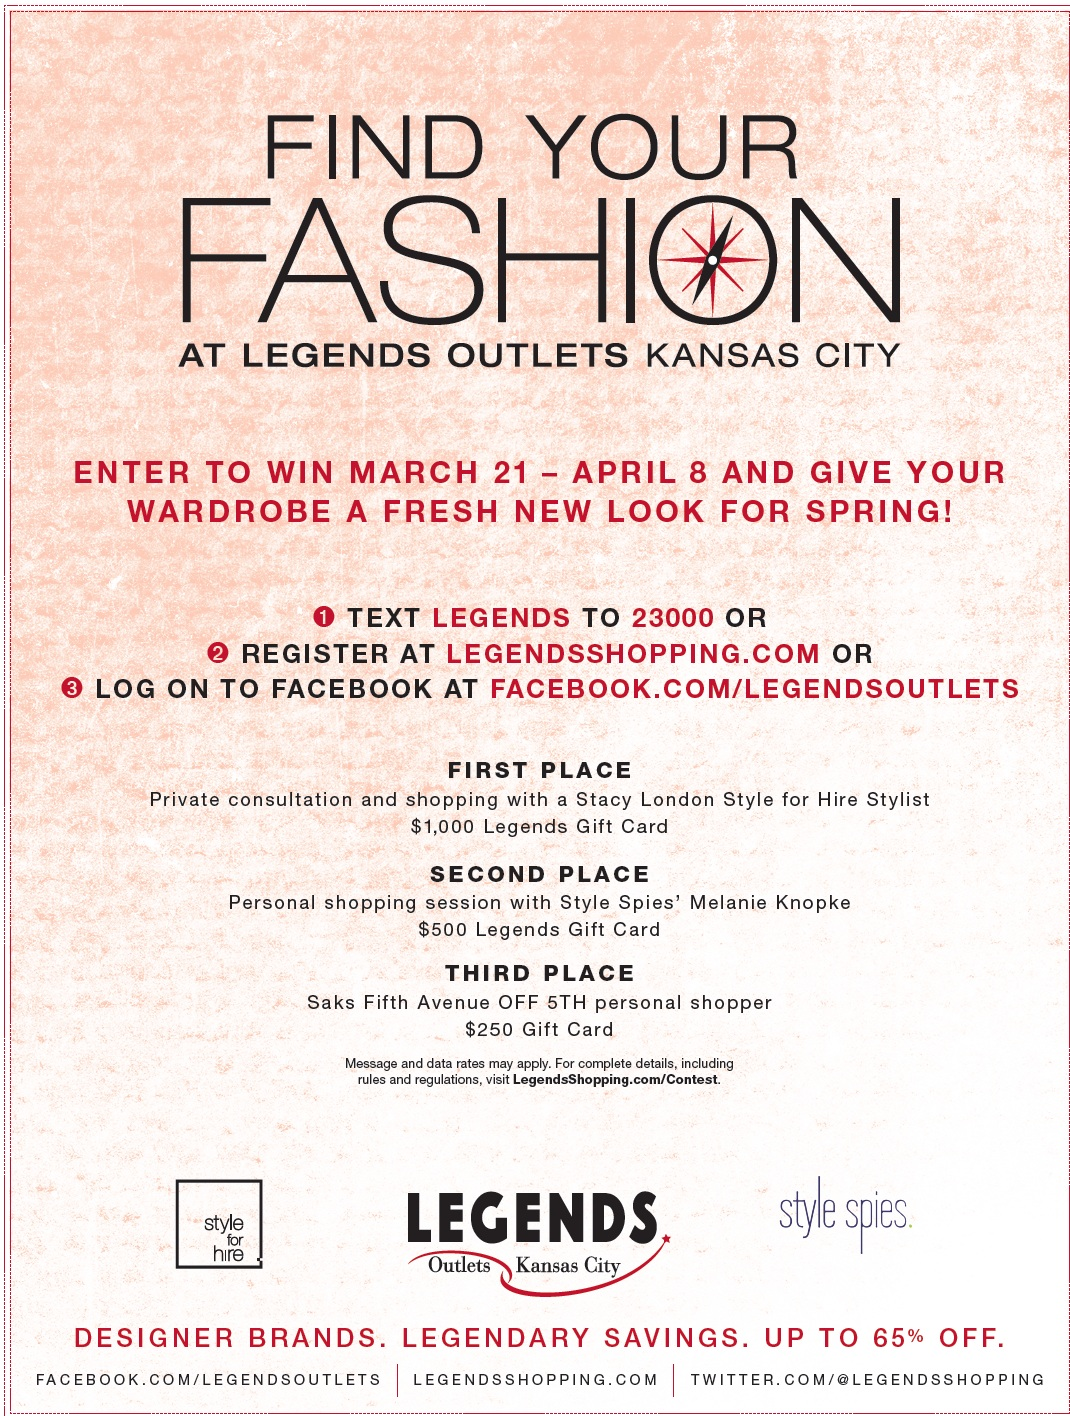 Find your fashion at Legends Outlets Kansas City, with a style promotion from March 21 - April 8 and give your wardrobe a fresh new look for spring! (click image to enlarge and/or save.)